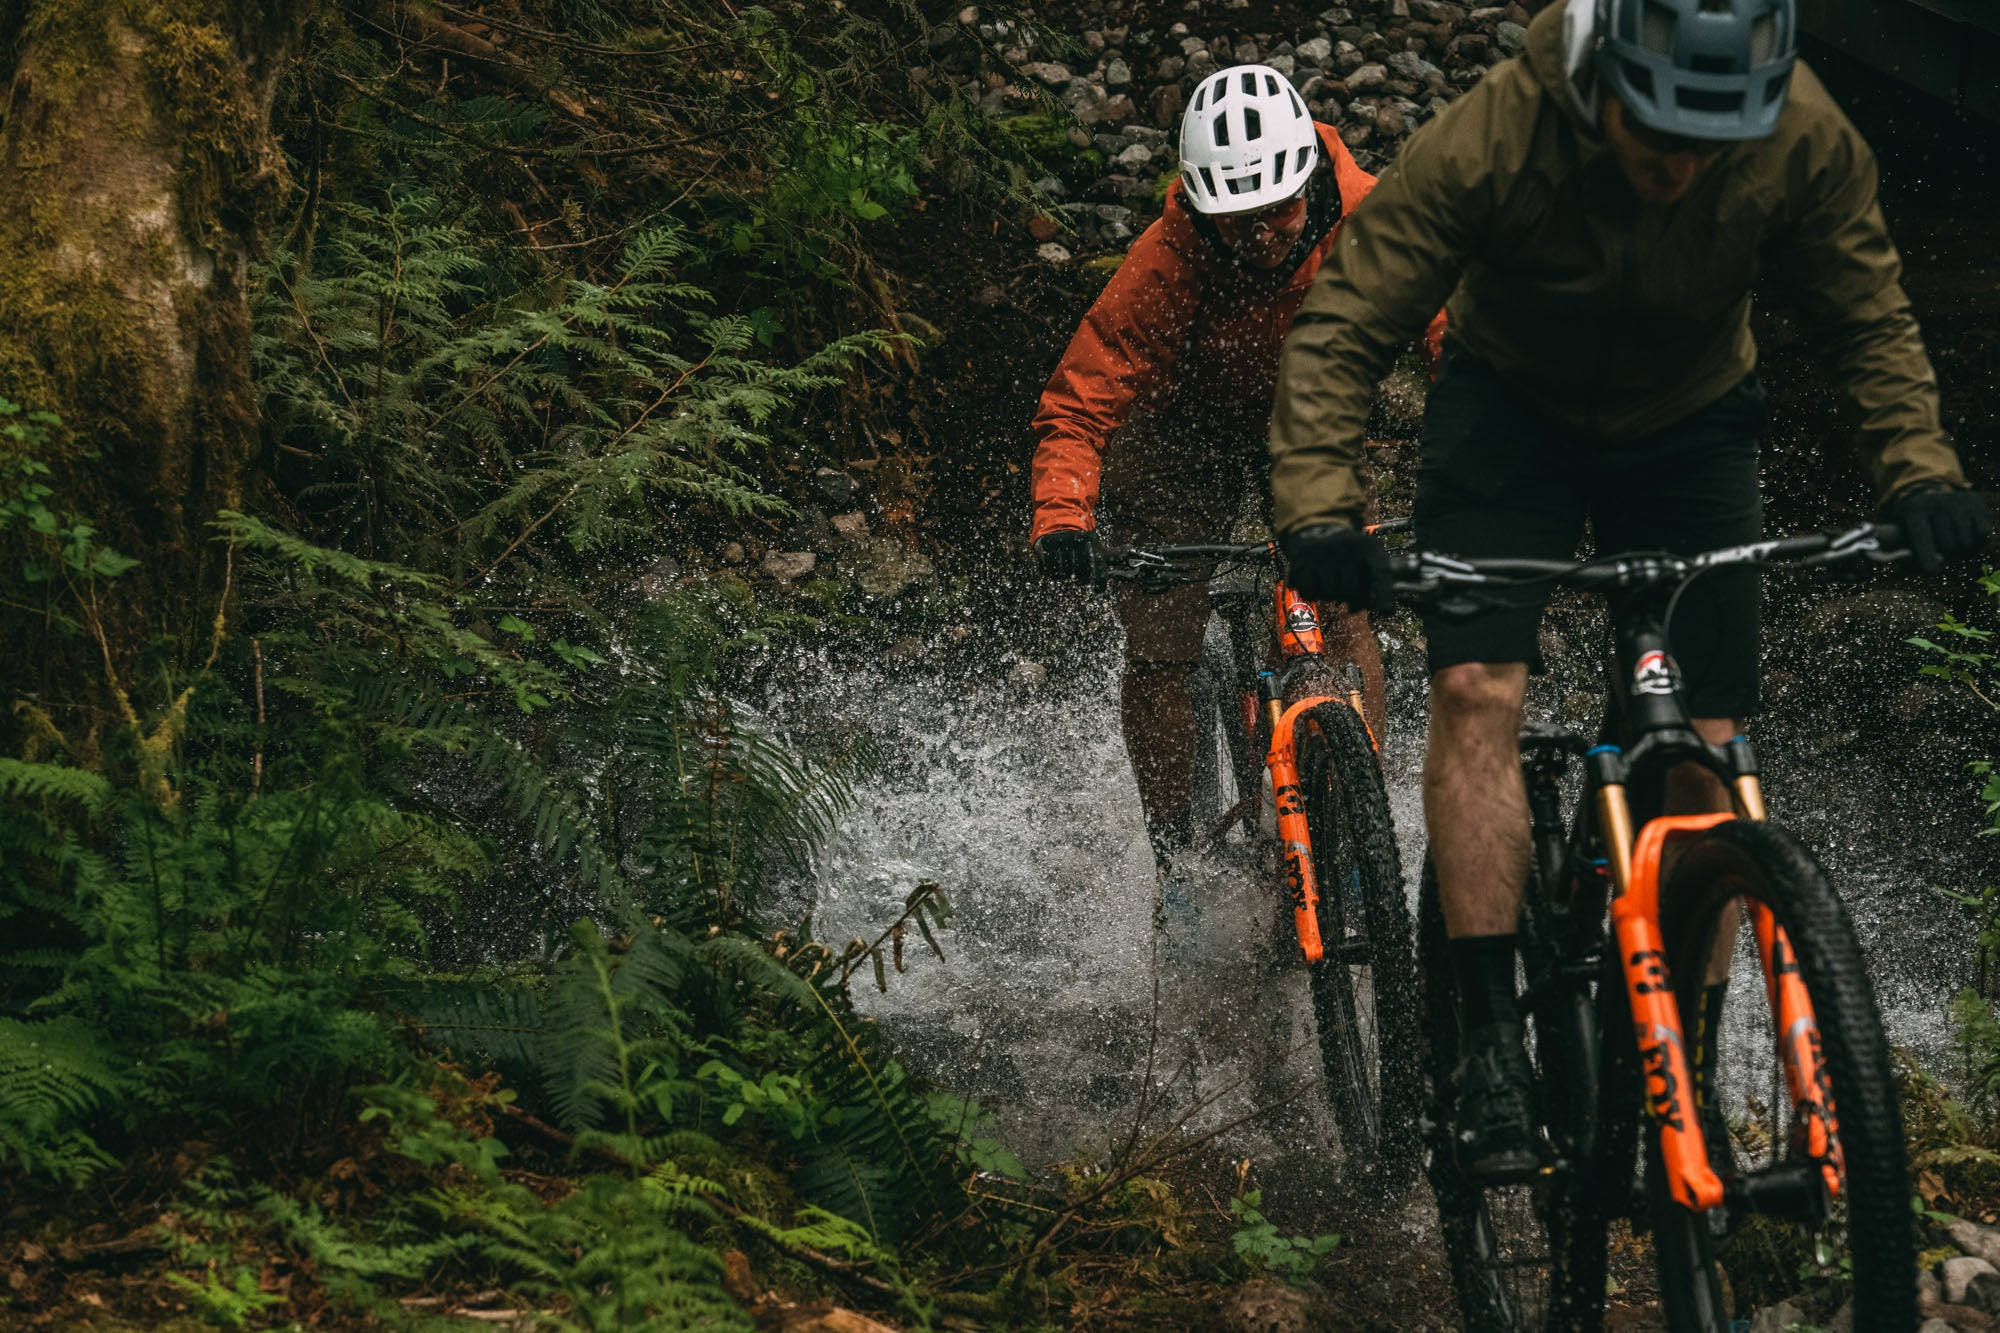 Jesse Melamed and Felix Burke ride the Element in Squamish, BC.